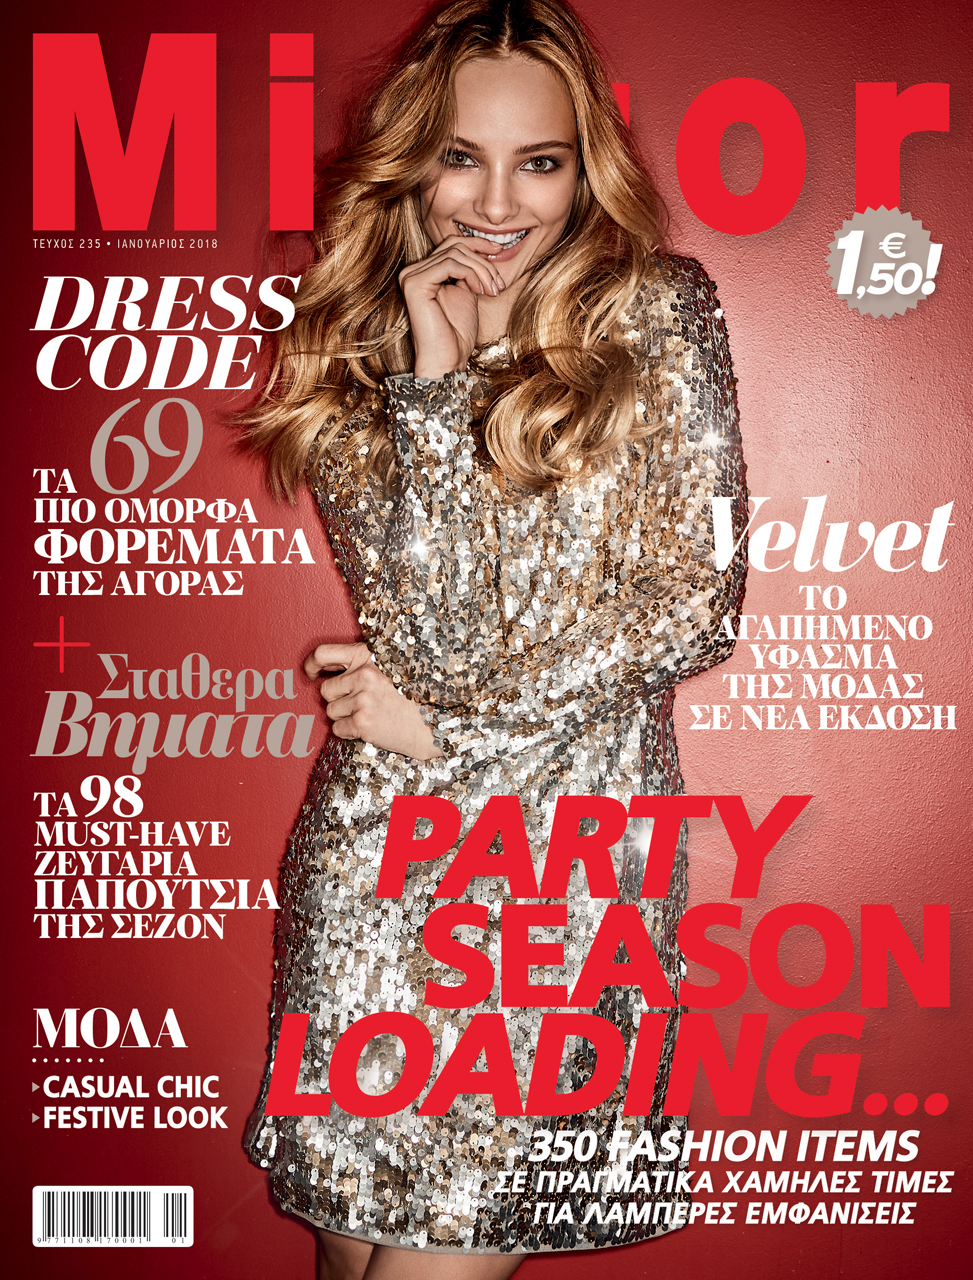 Xenia Belskaya in Christmas mood on the cover of Mirror